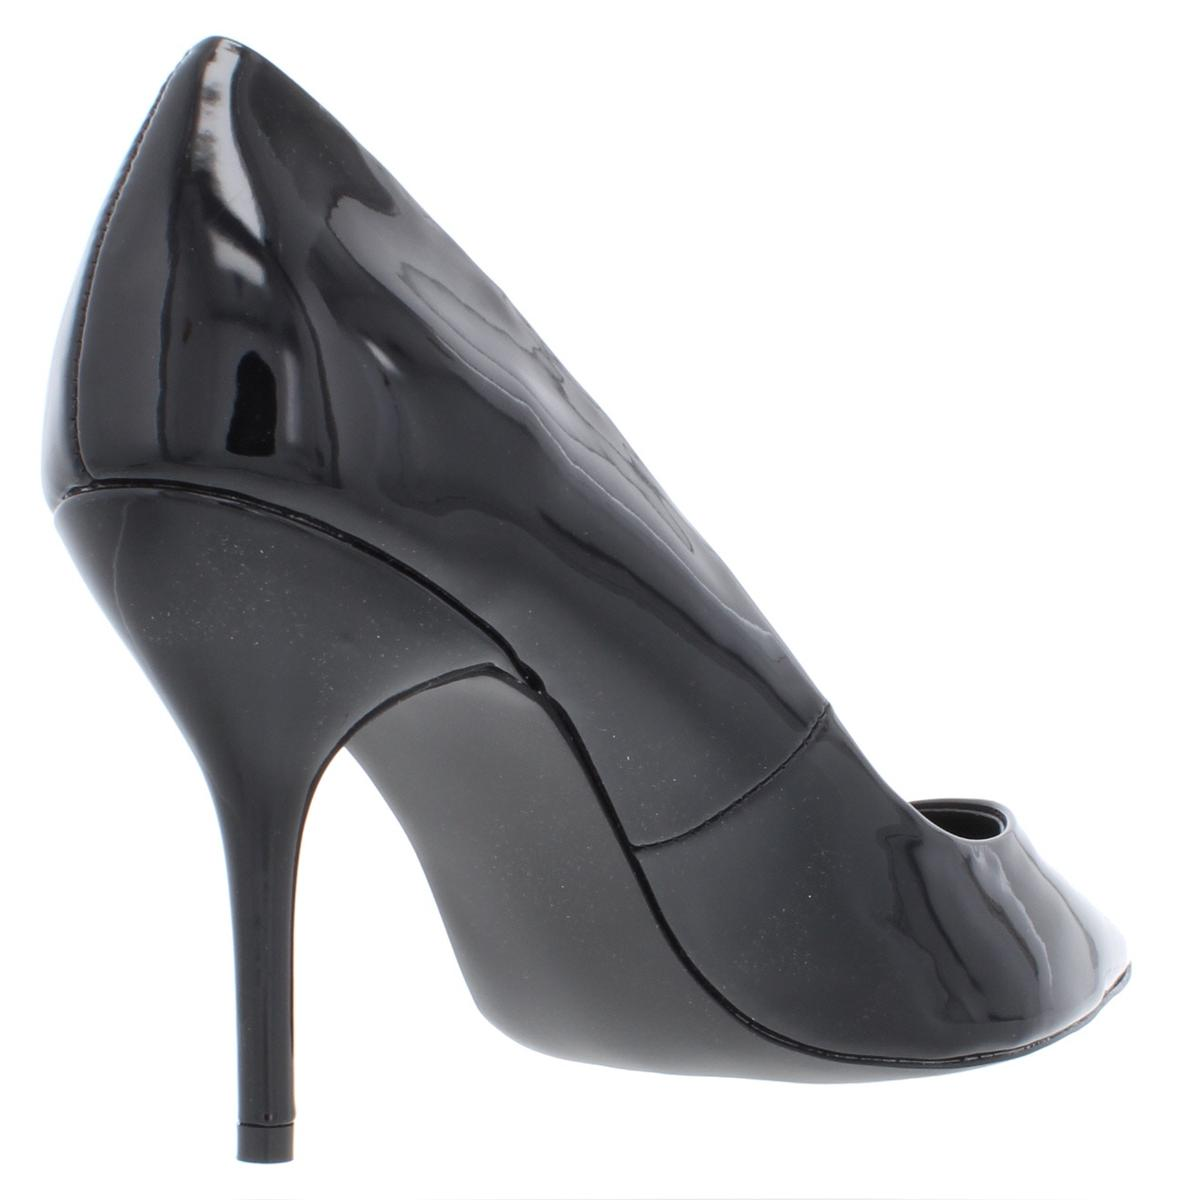 Steve-Madden-Womens-Selene-Patent-Stiletto-Evening-Dress-Heels-Shoes-BHFO-1619 thumbnail 4